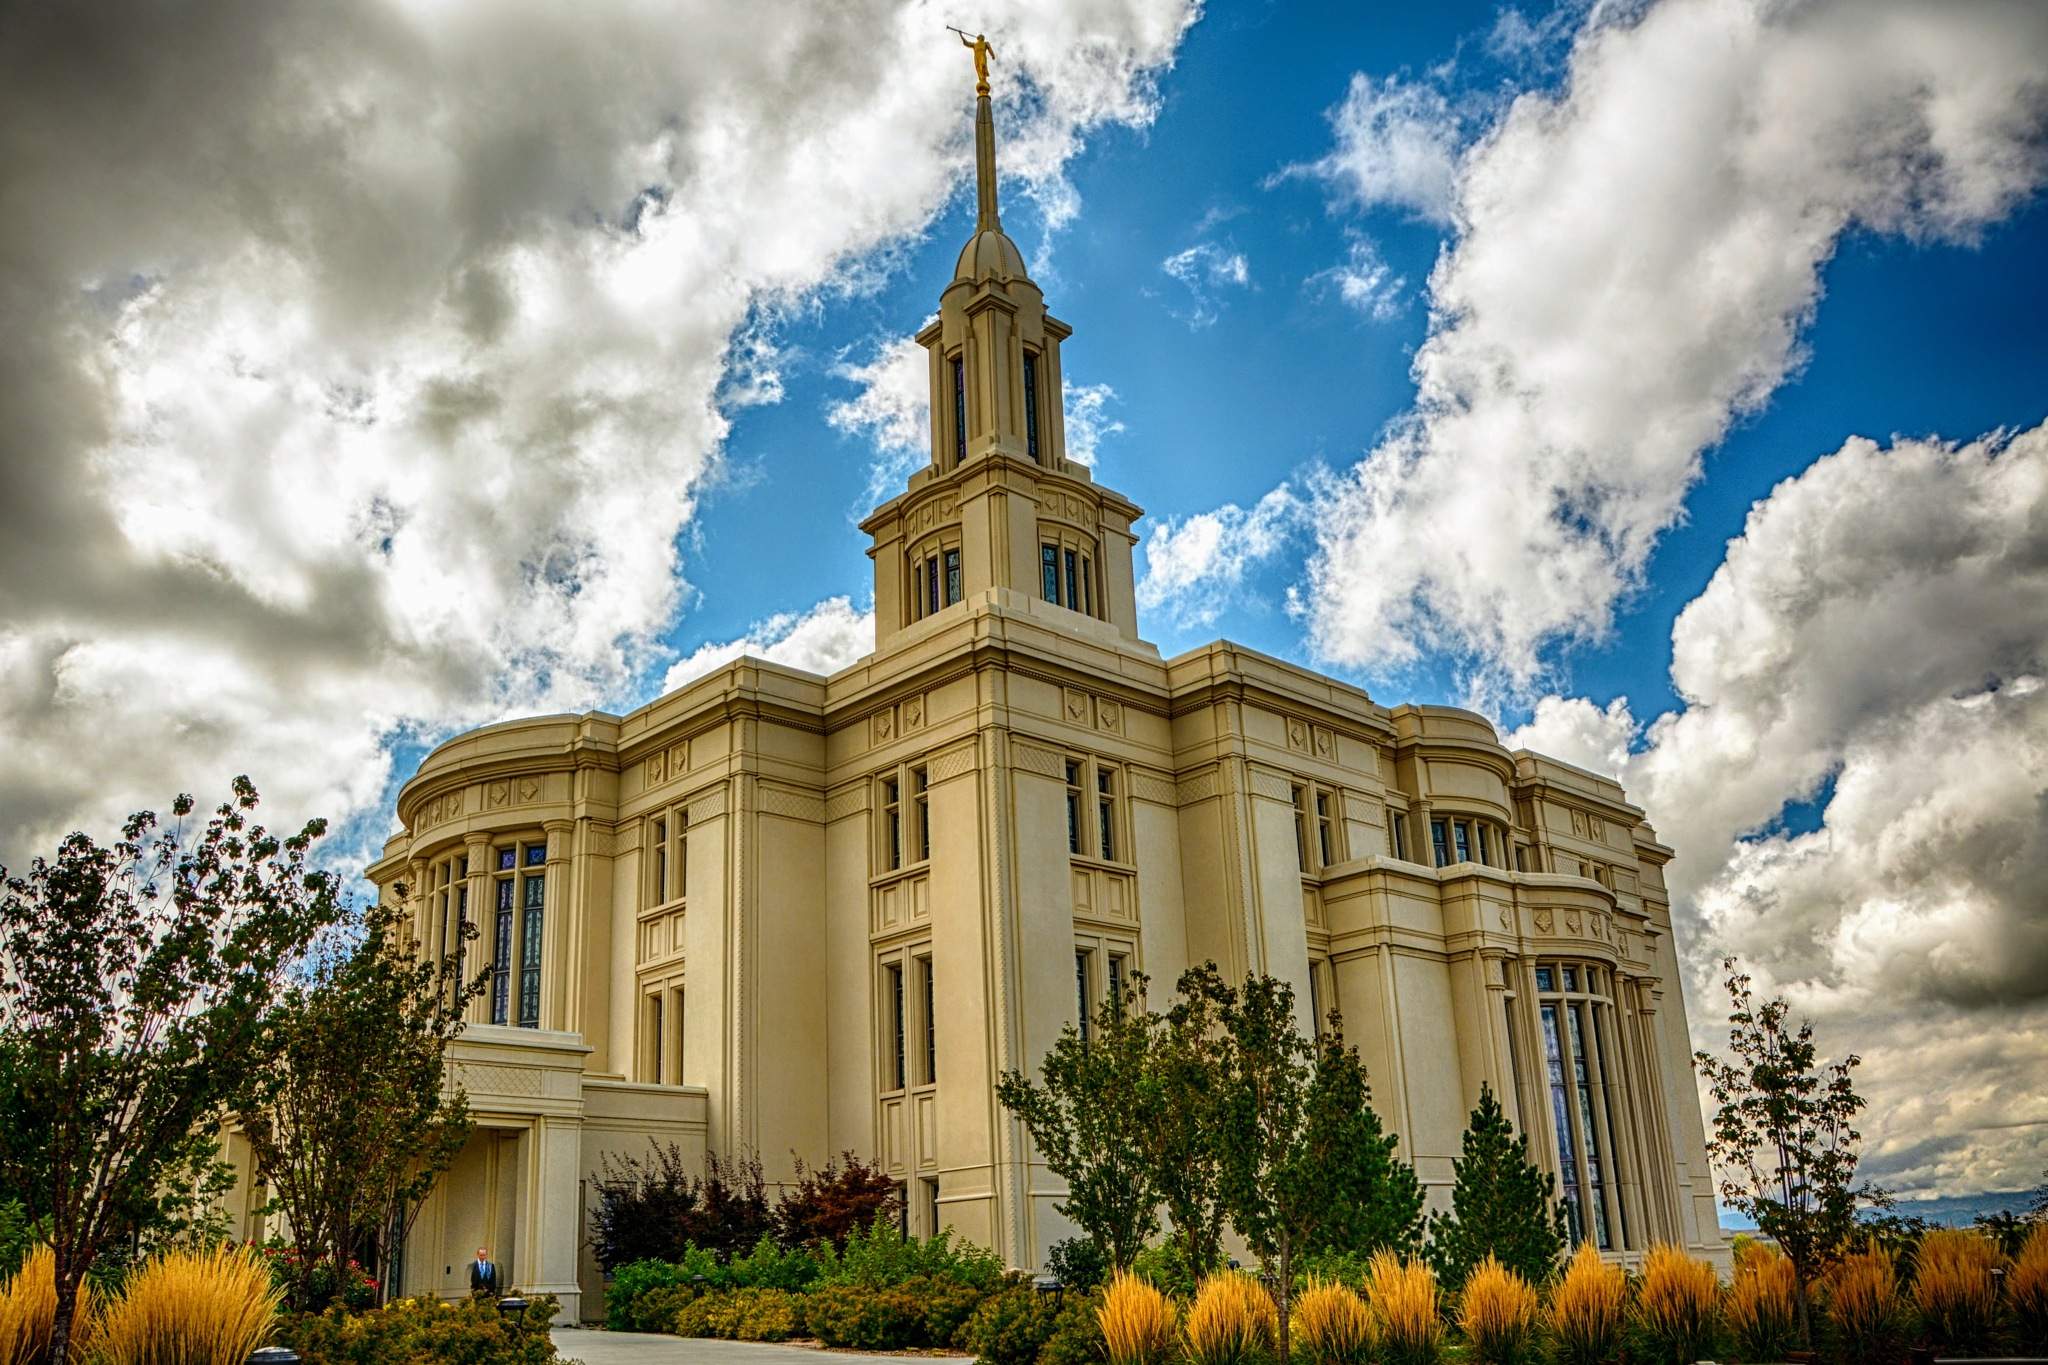 Mormon Temple, Salt Lake City, UT  by Simon Dadouche